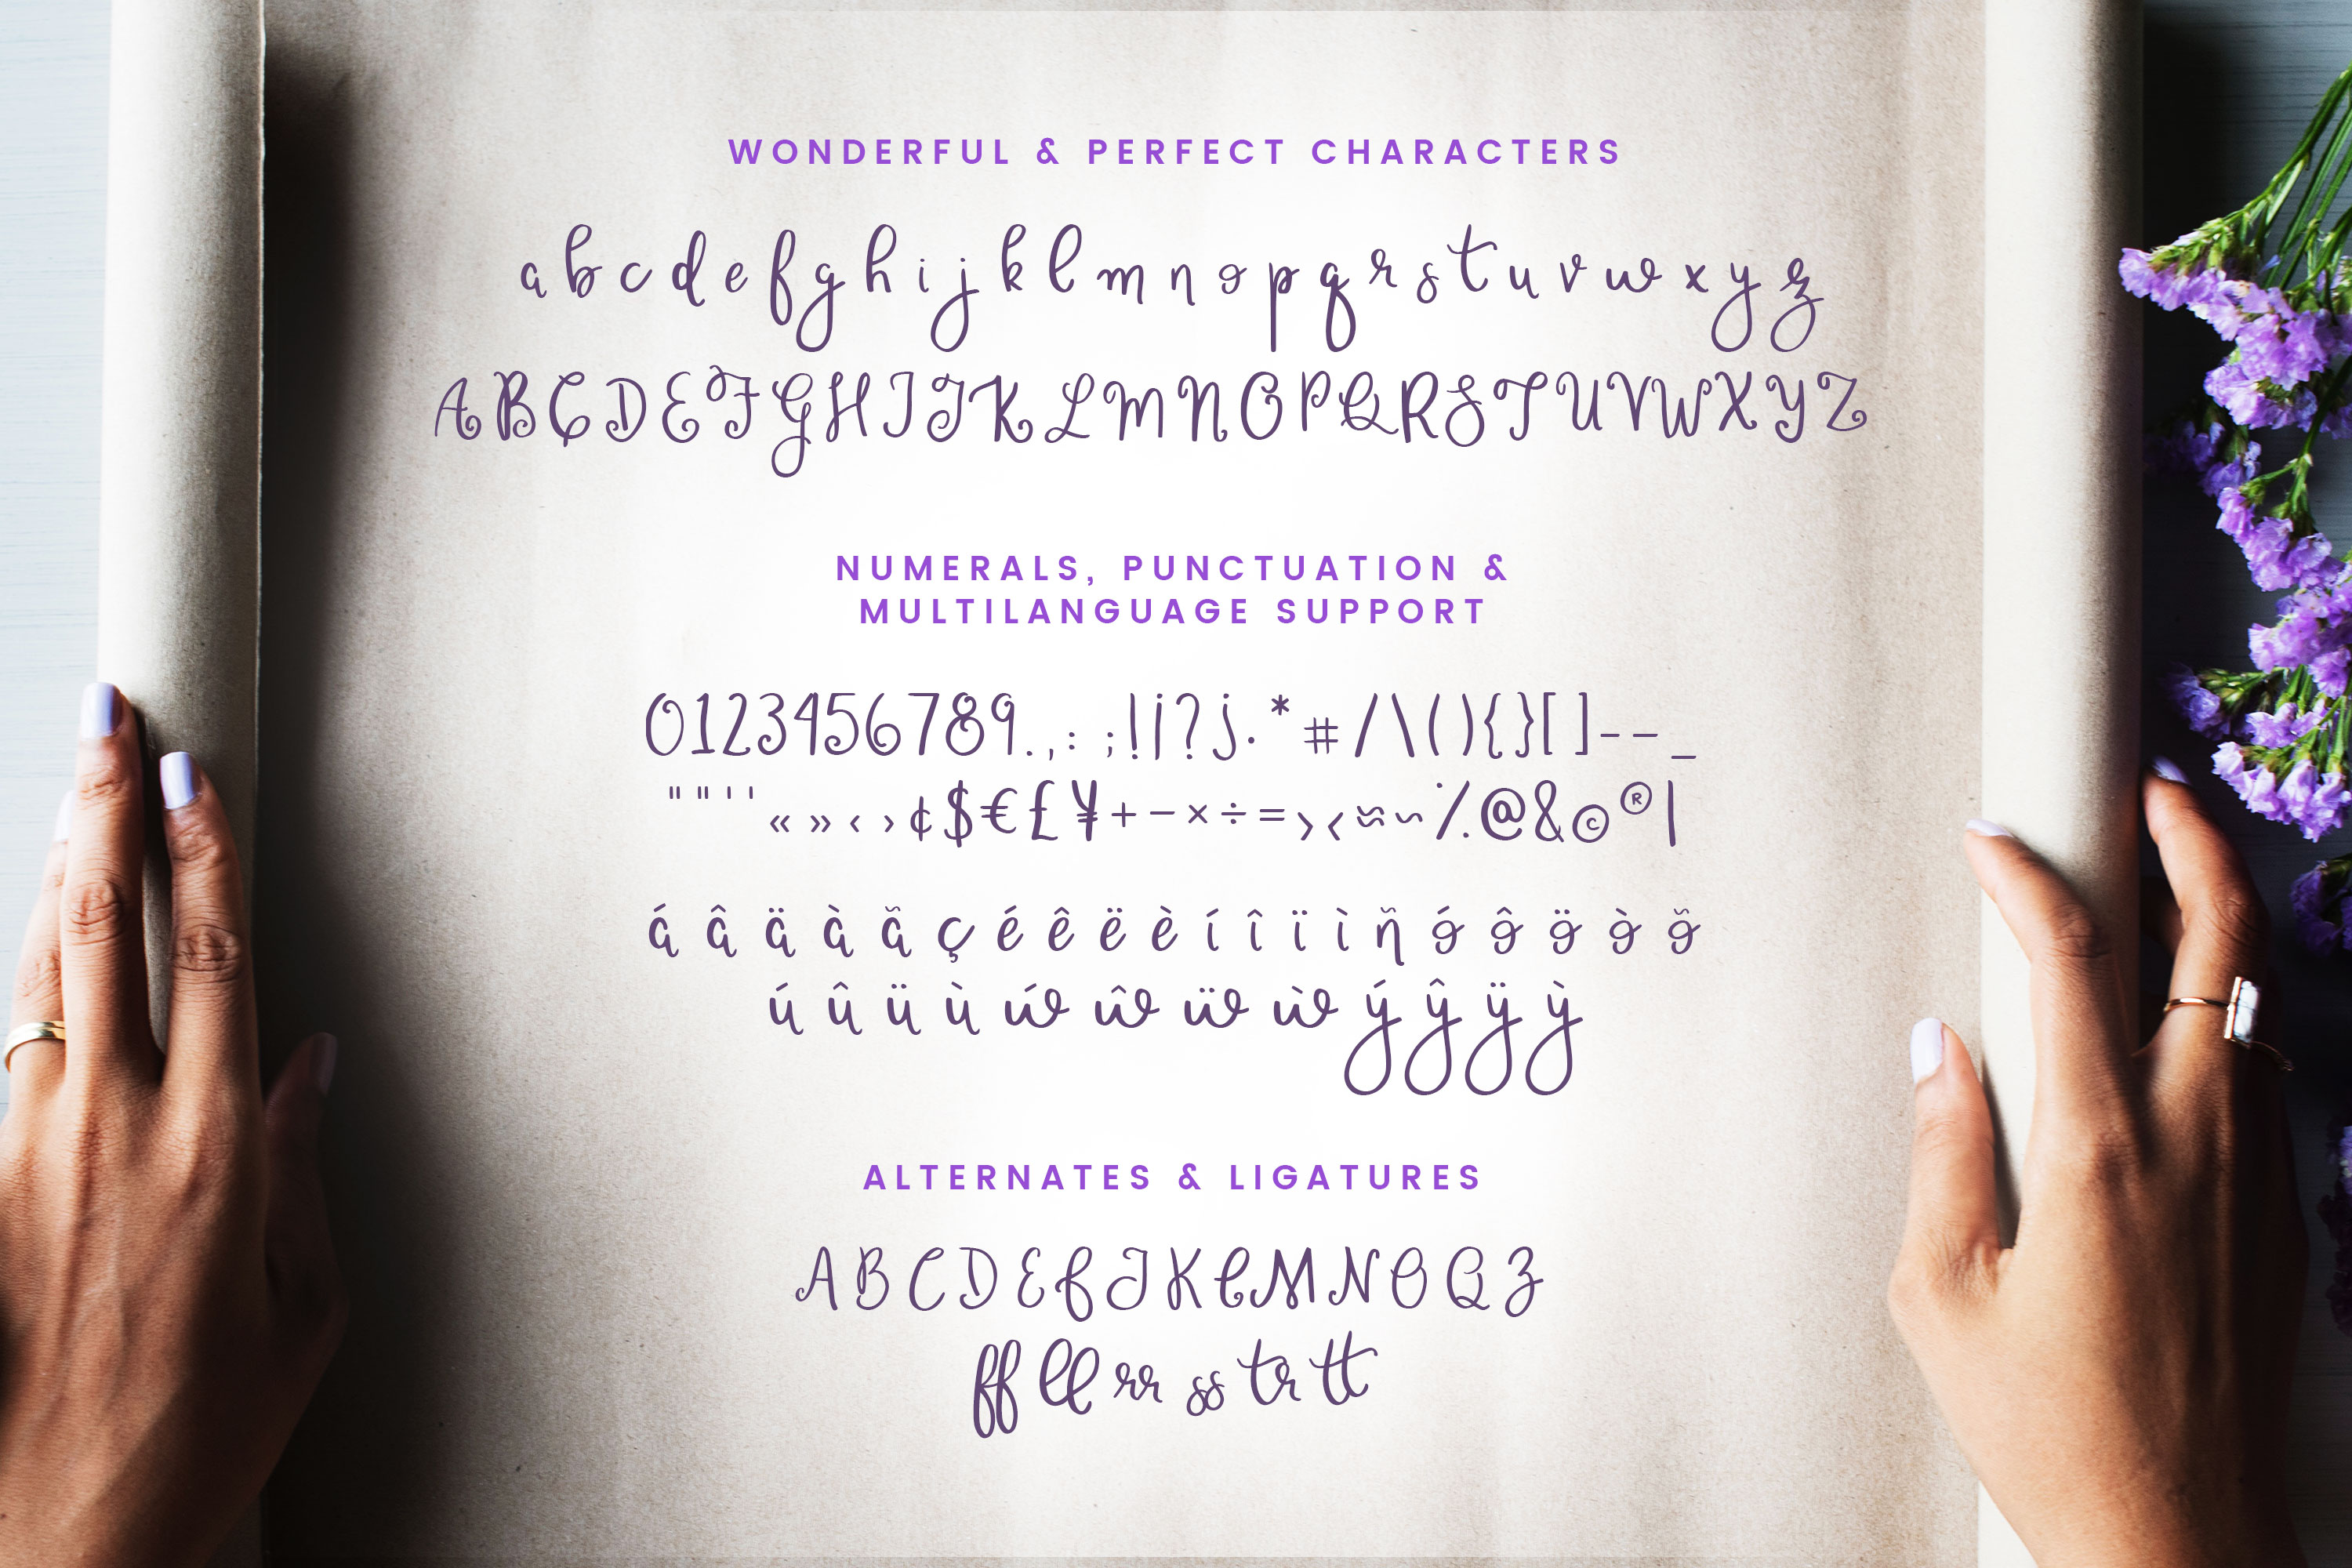 Wonderful & Perfect - A Script Font example image 5